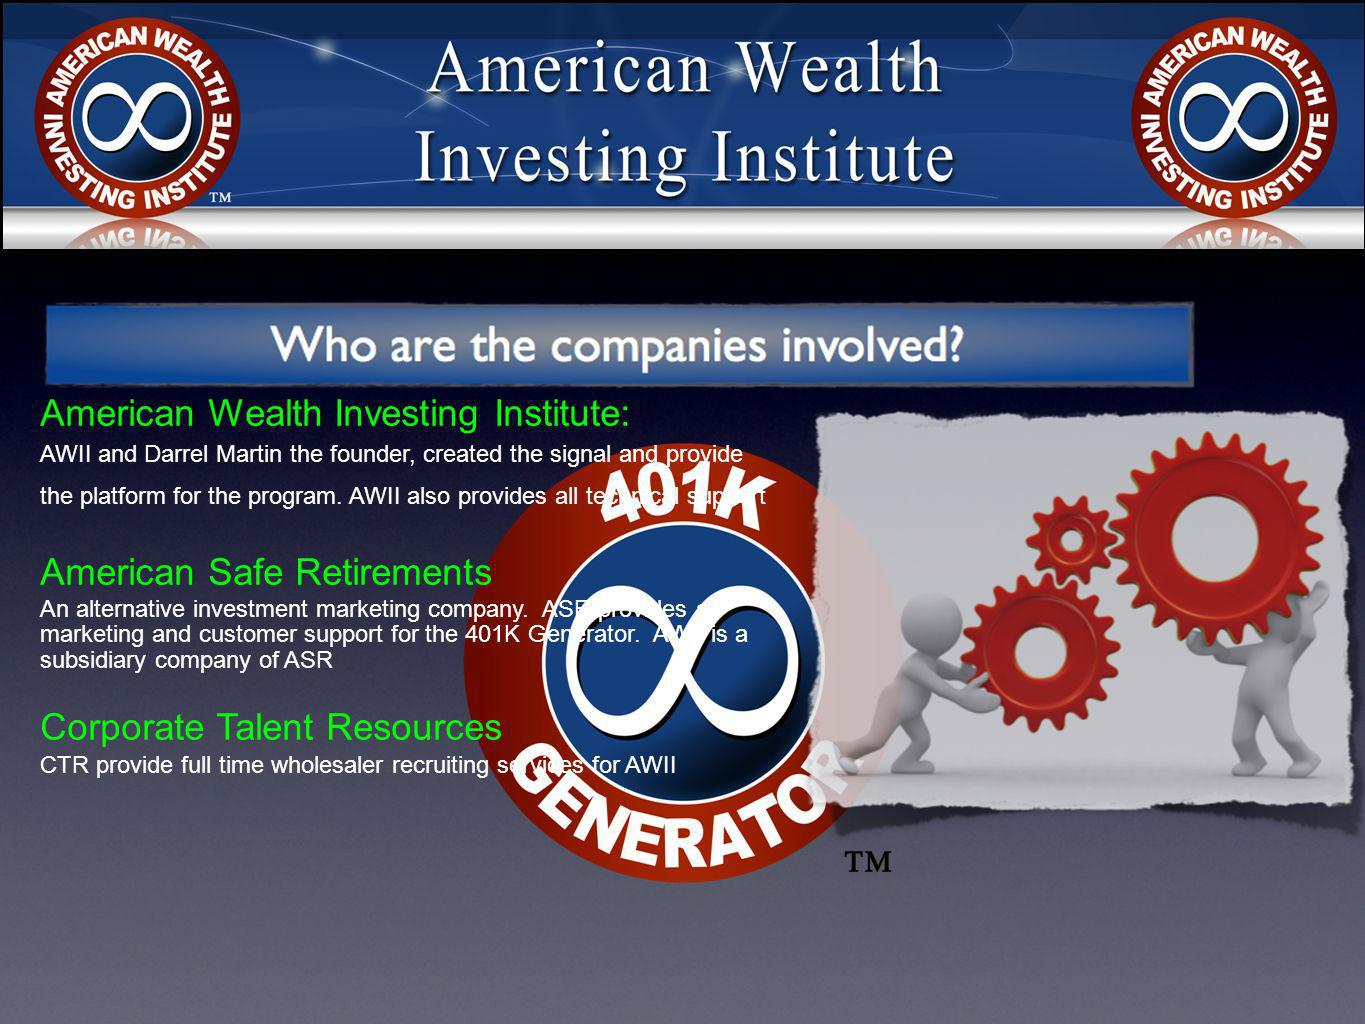 American Wealth Investing Institute: AWII and Darrel Martin the founder, created the signal and provide the platform for the program.